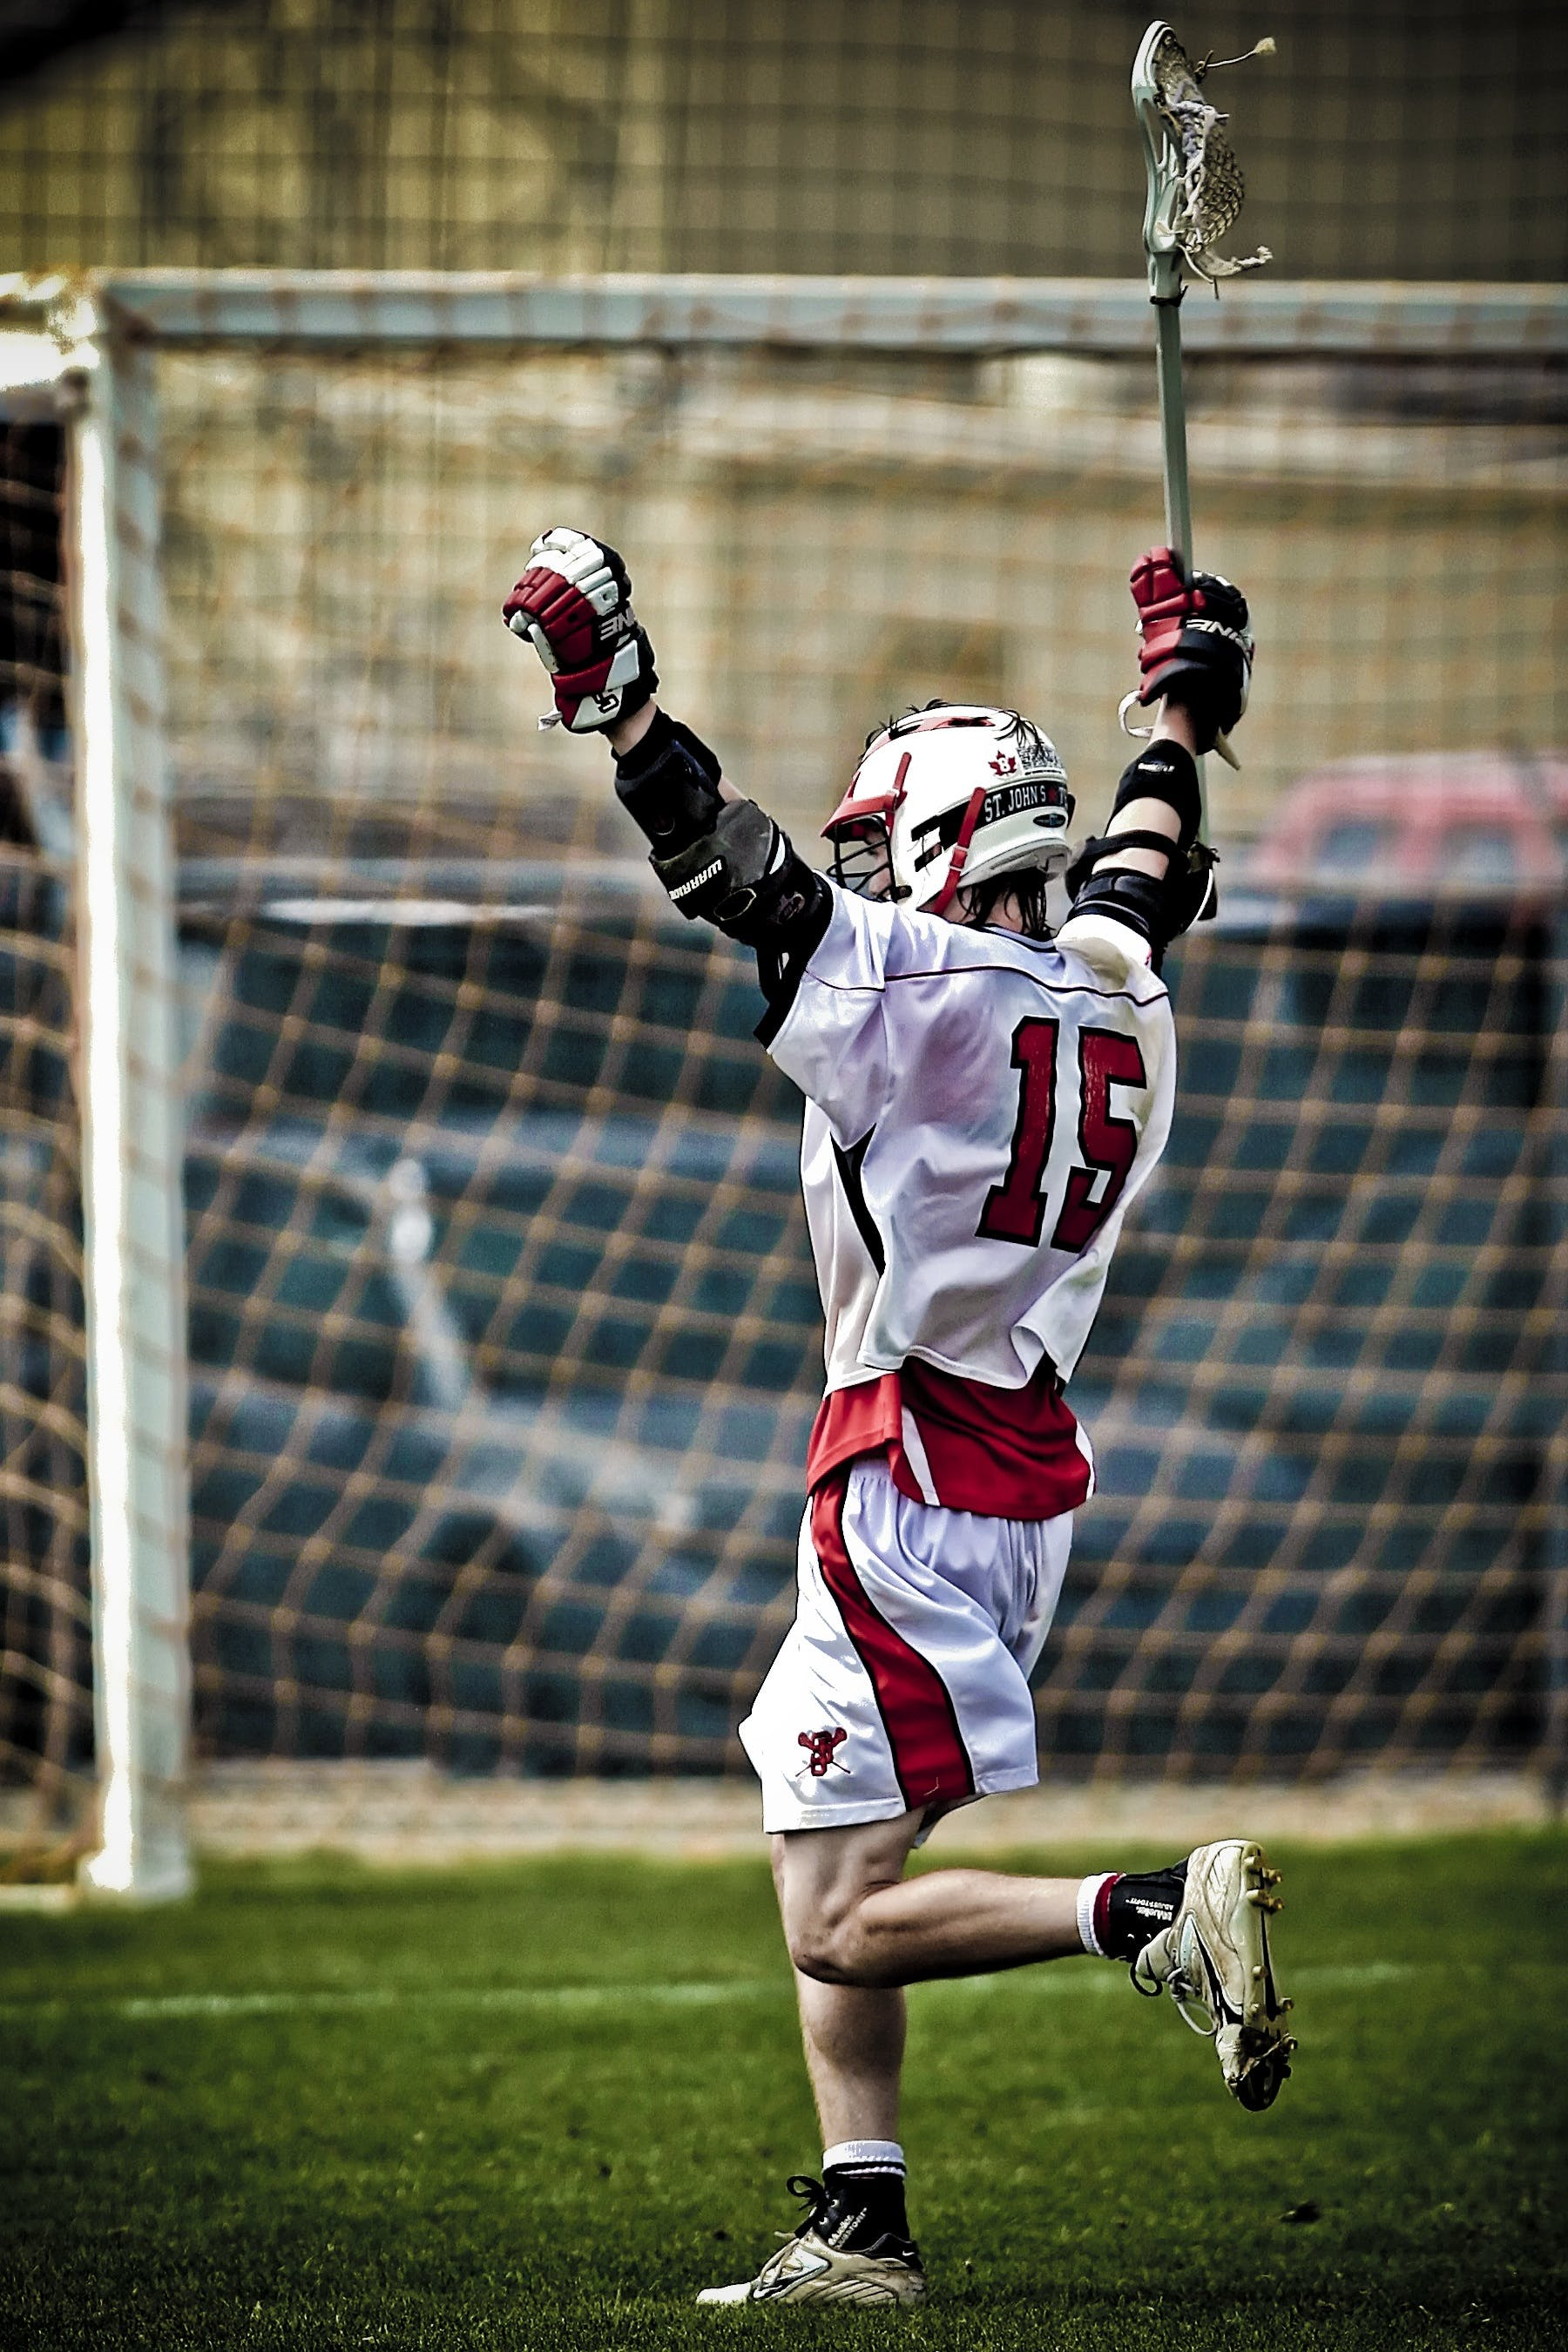 Man Holding Lacrosse Running Towards Goal